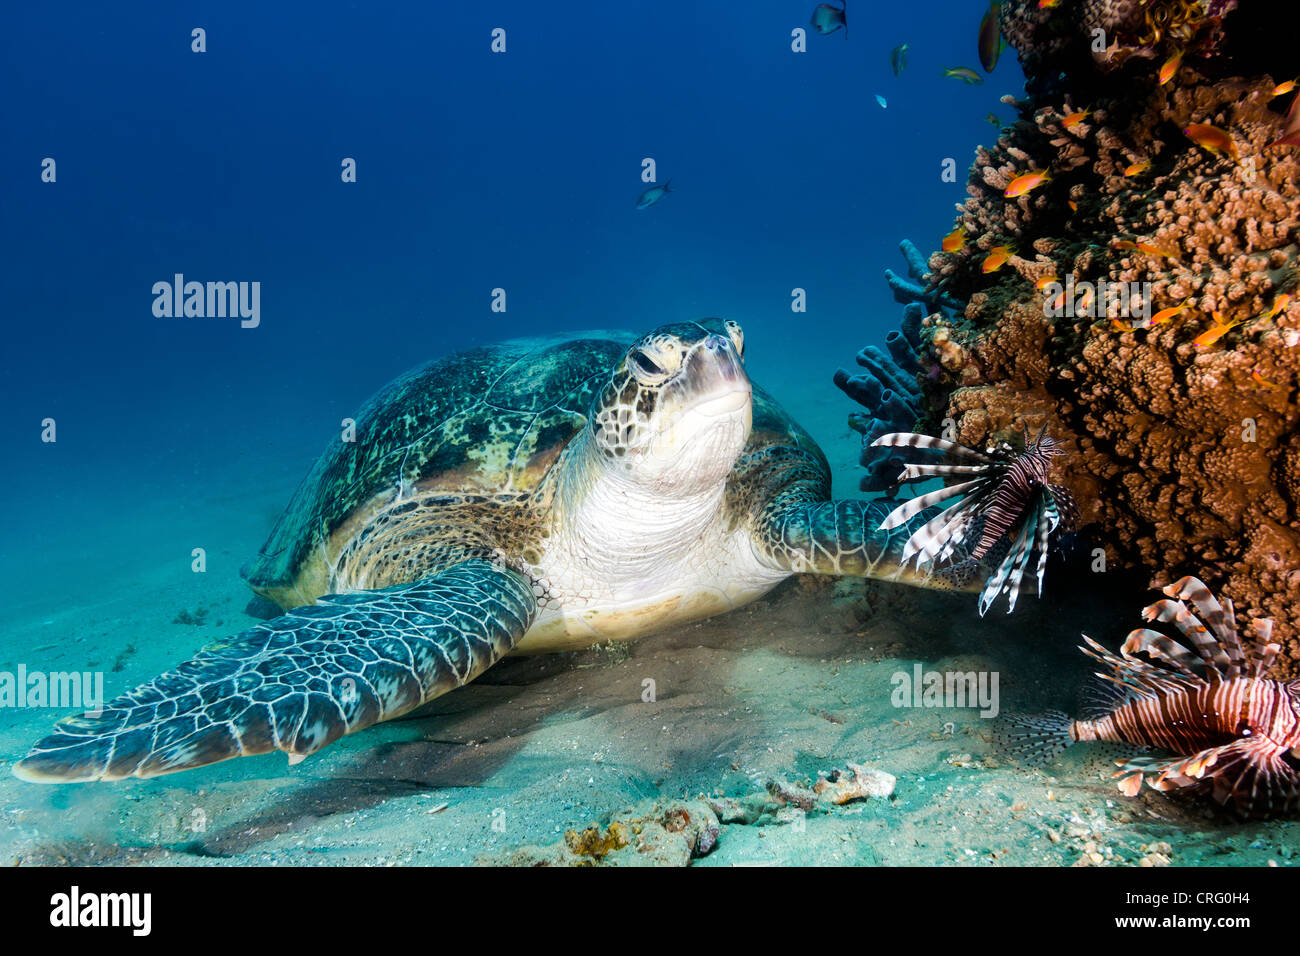 A Green Sea Turtle swats away lionfish as it settles on the sandy seabed next to a coral pinnacle - Stock Image